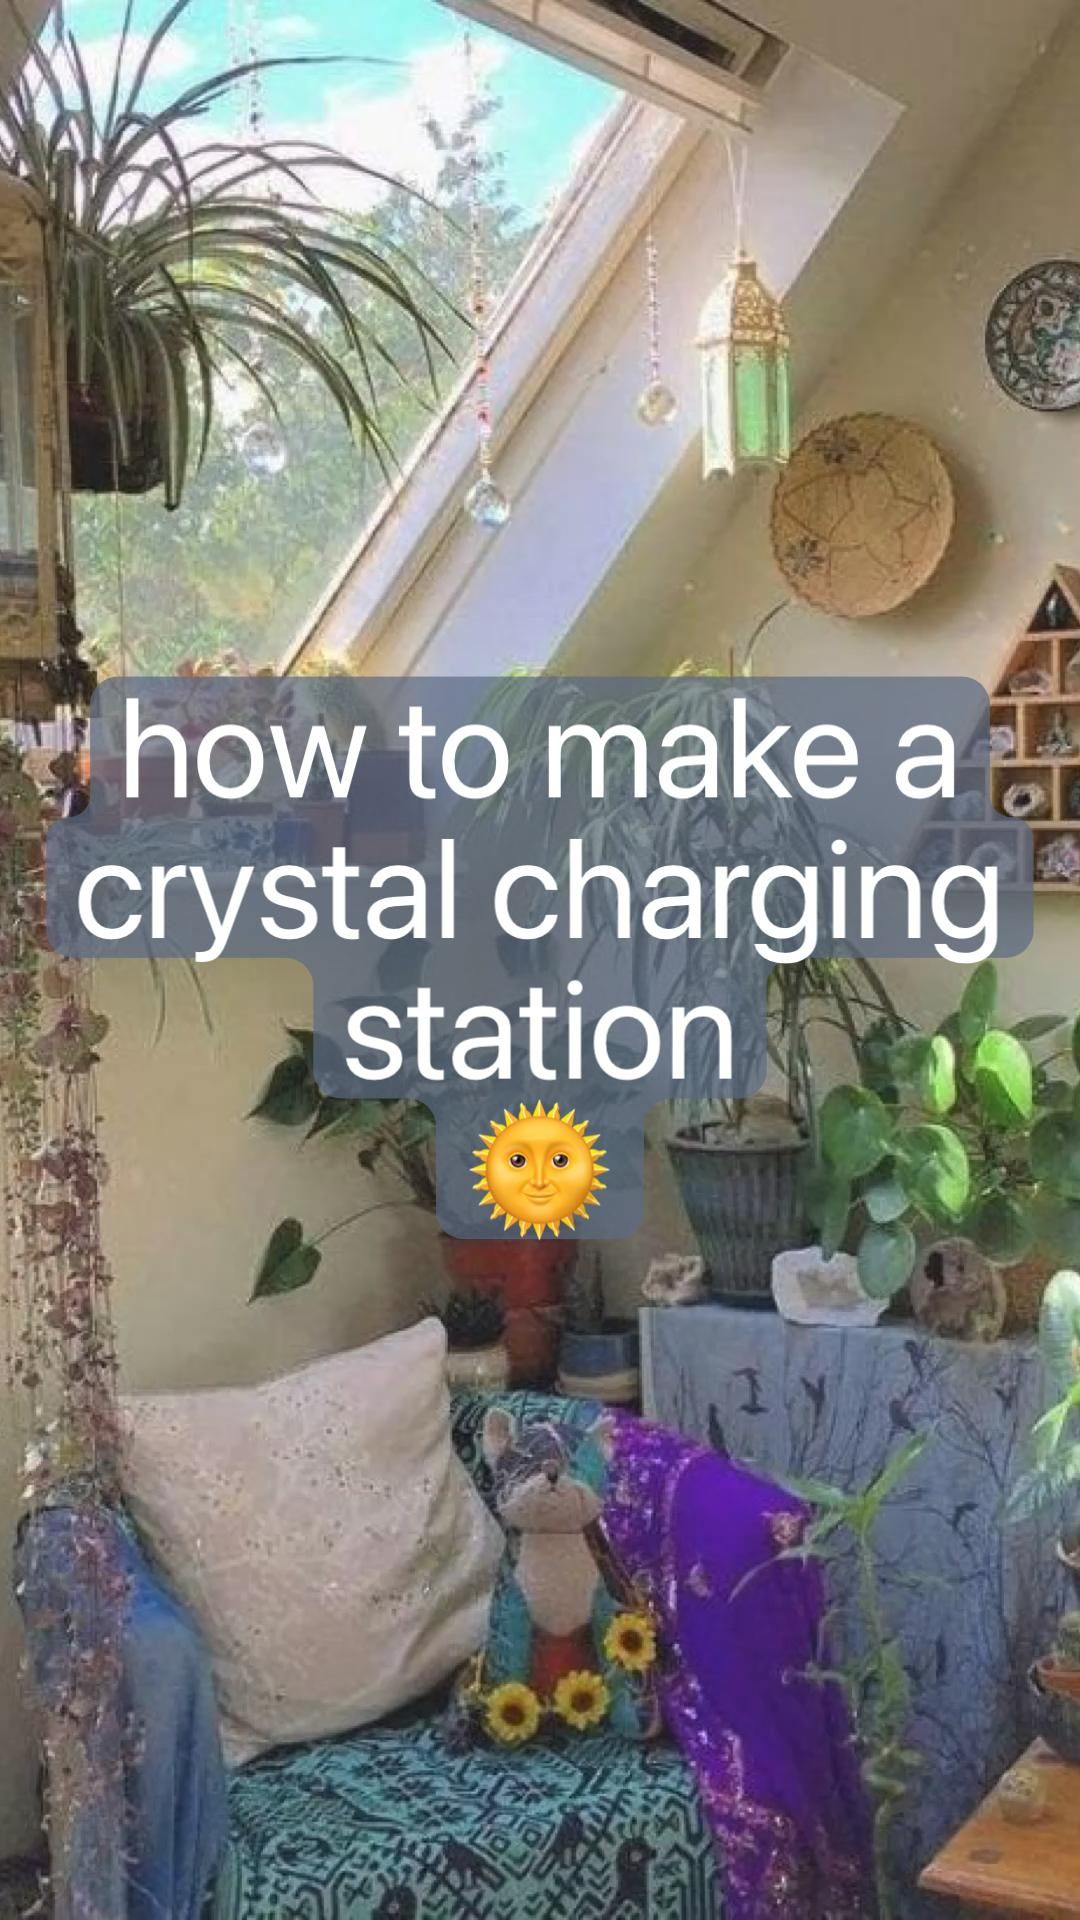 how to make a crystal charging station 🌞